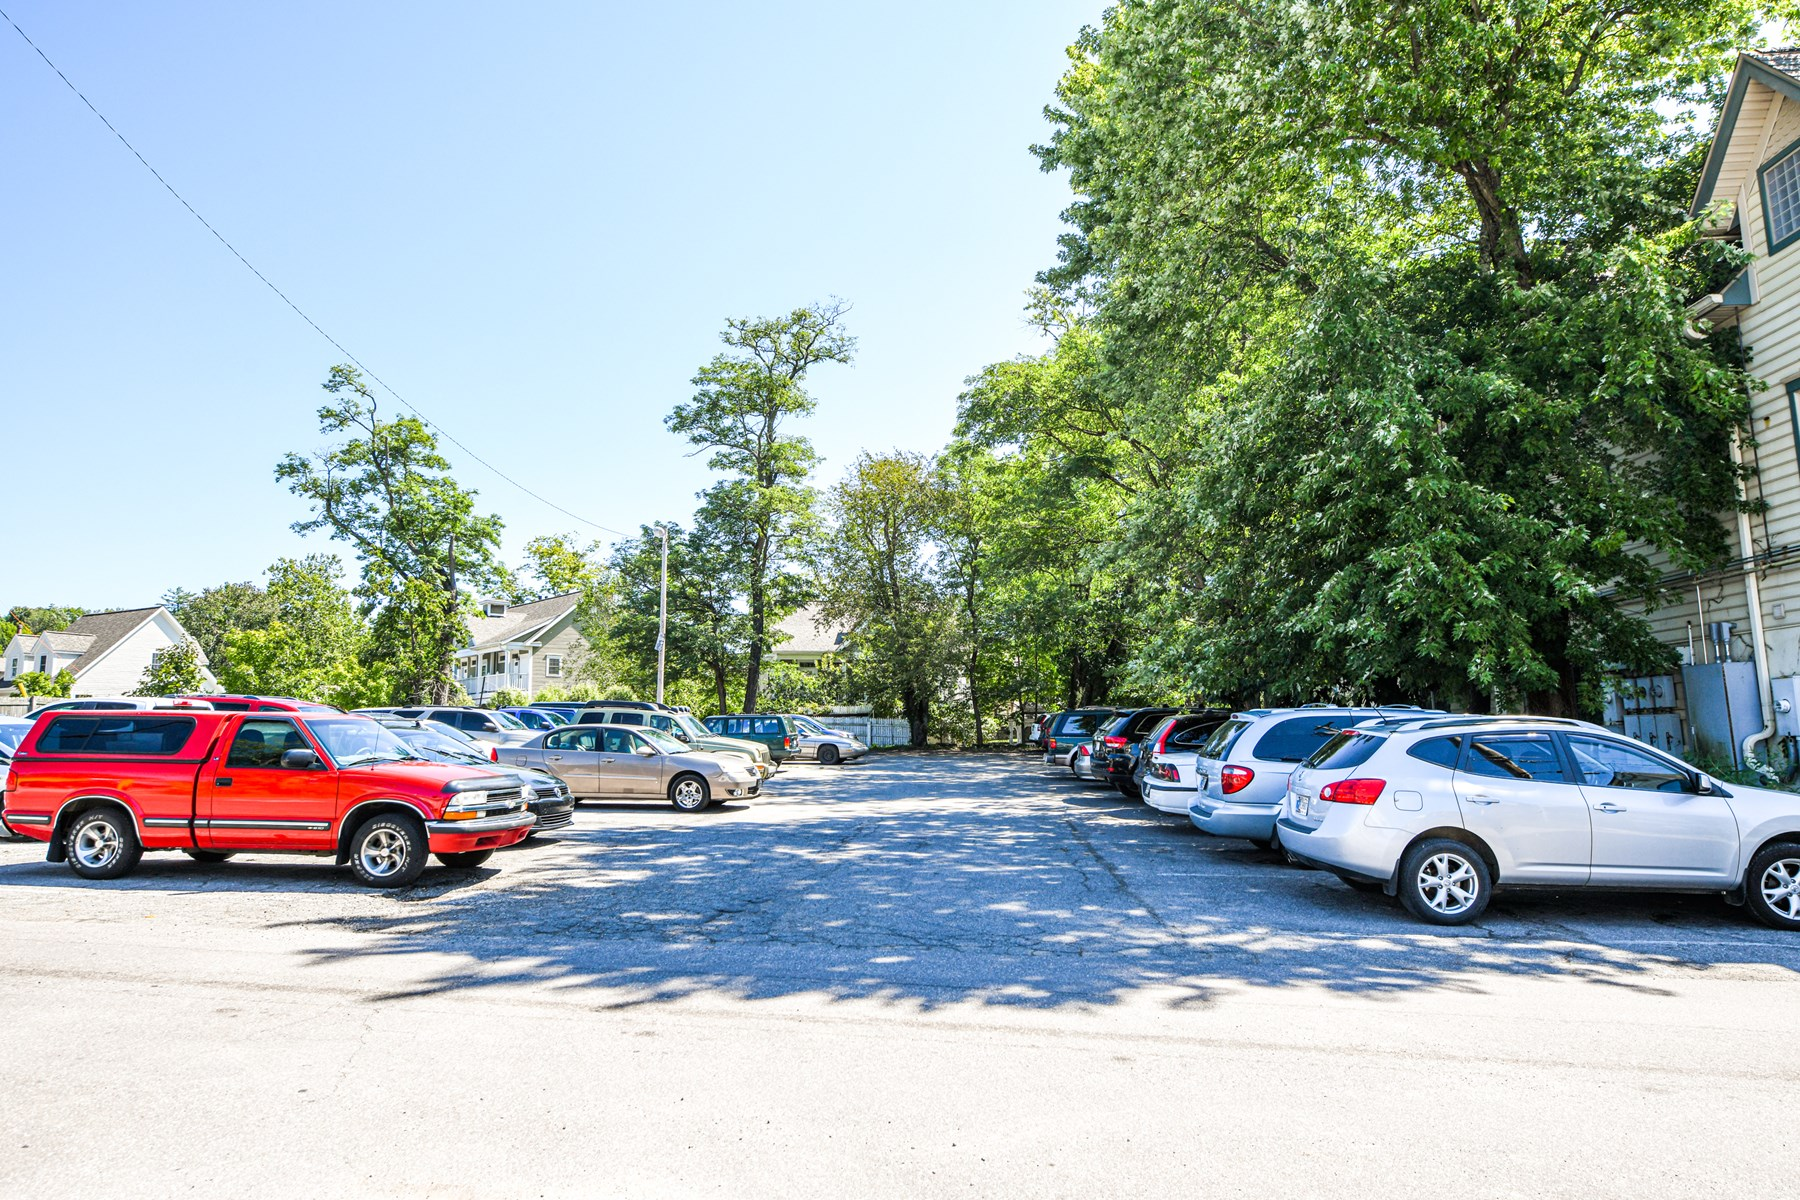 Parking Lot for Sale | Nashville, Indiana Brown County